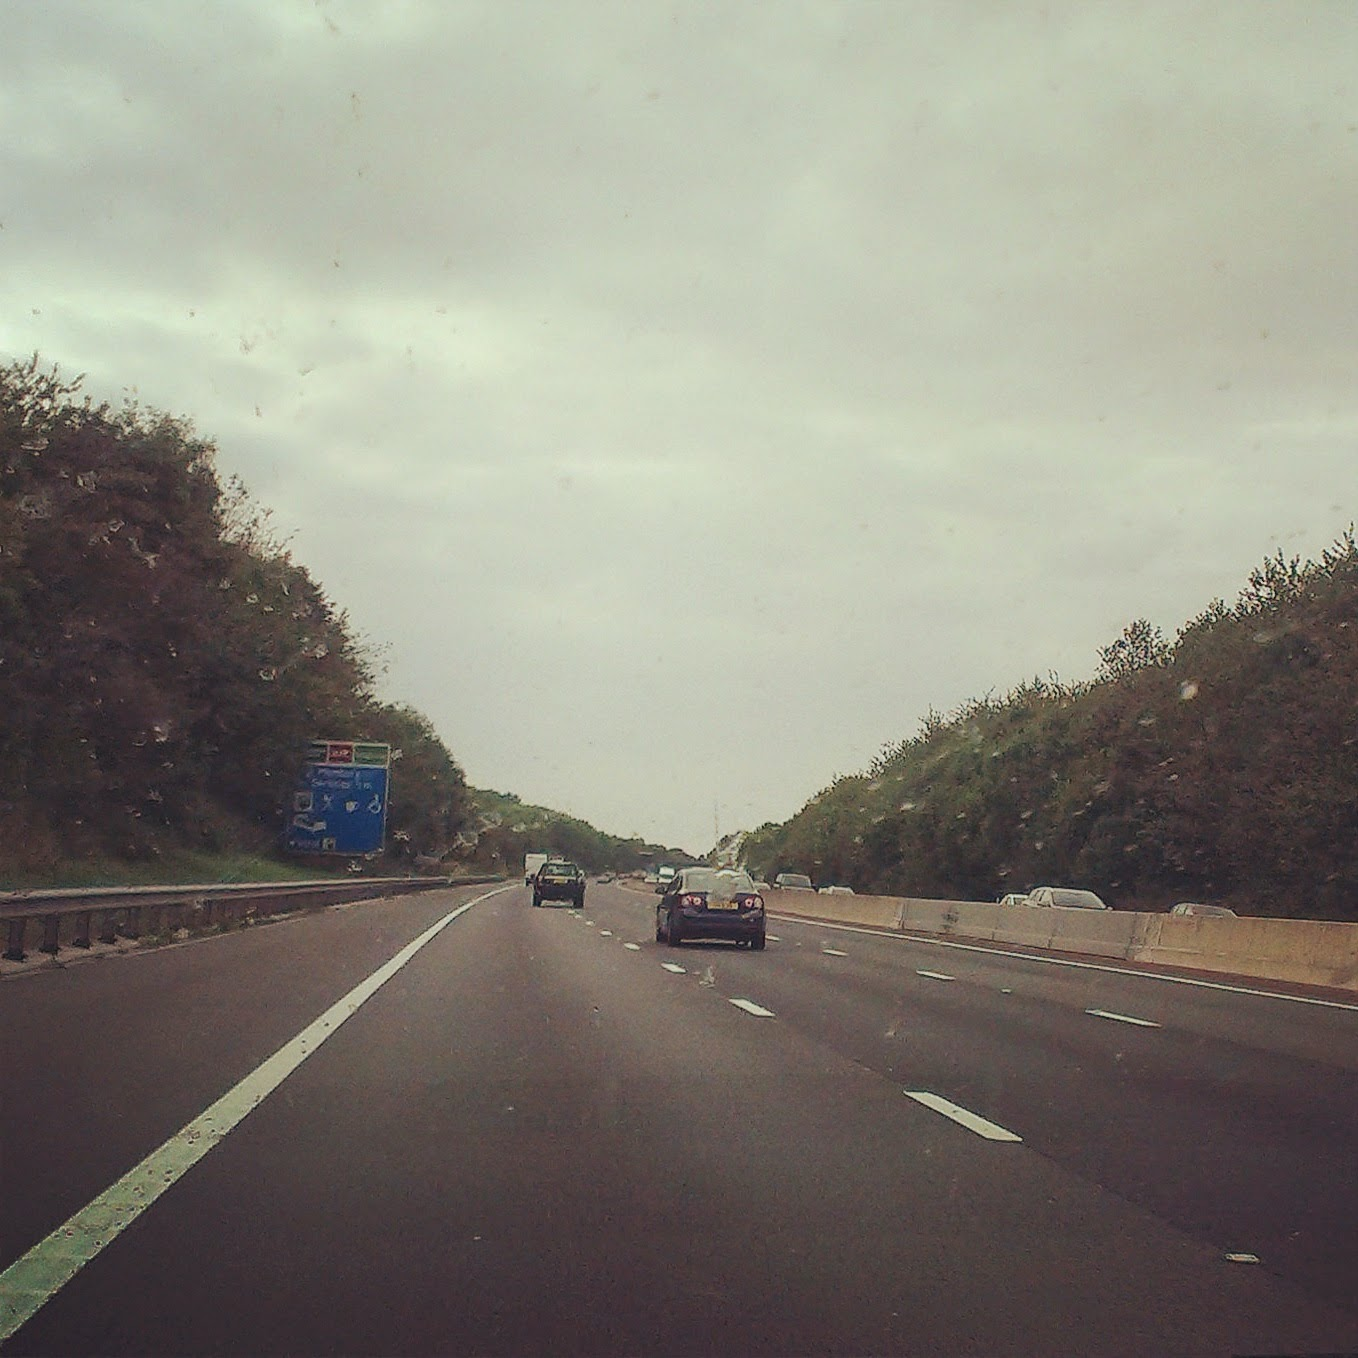 5pm - driving along the M4 motorway